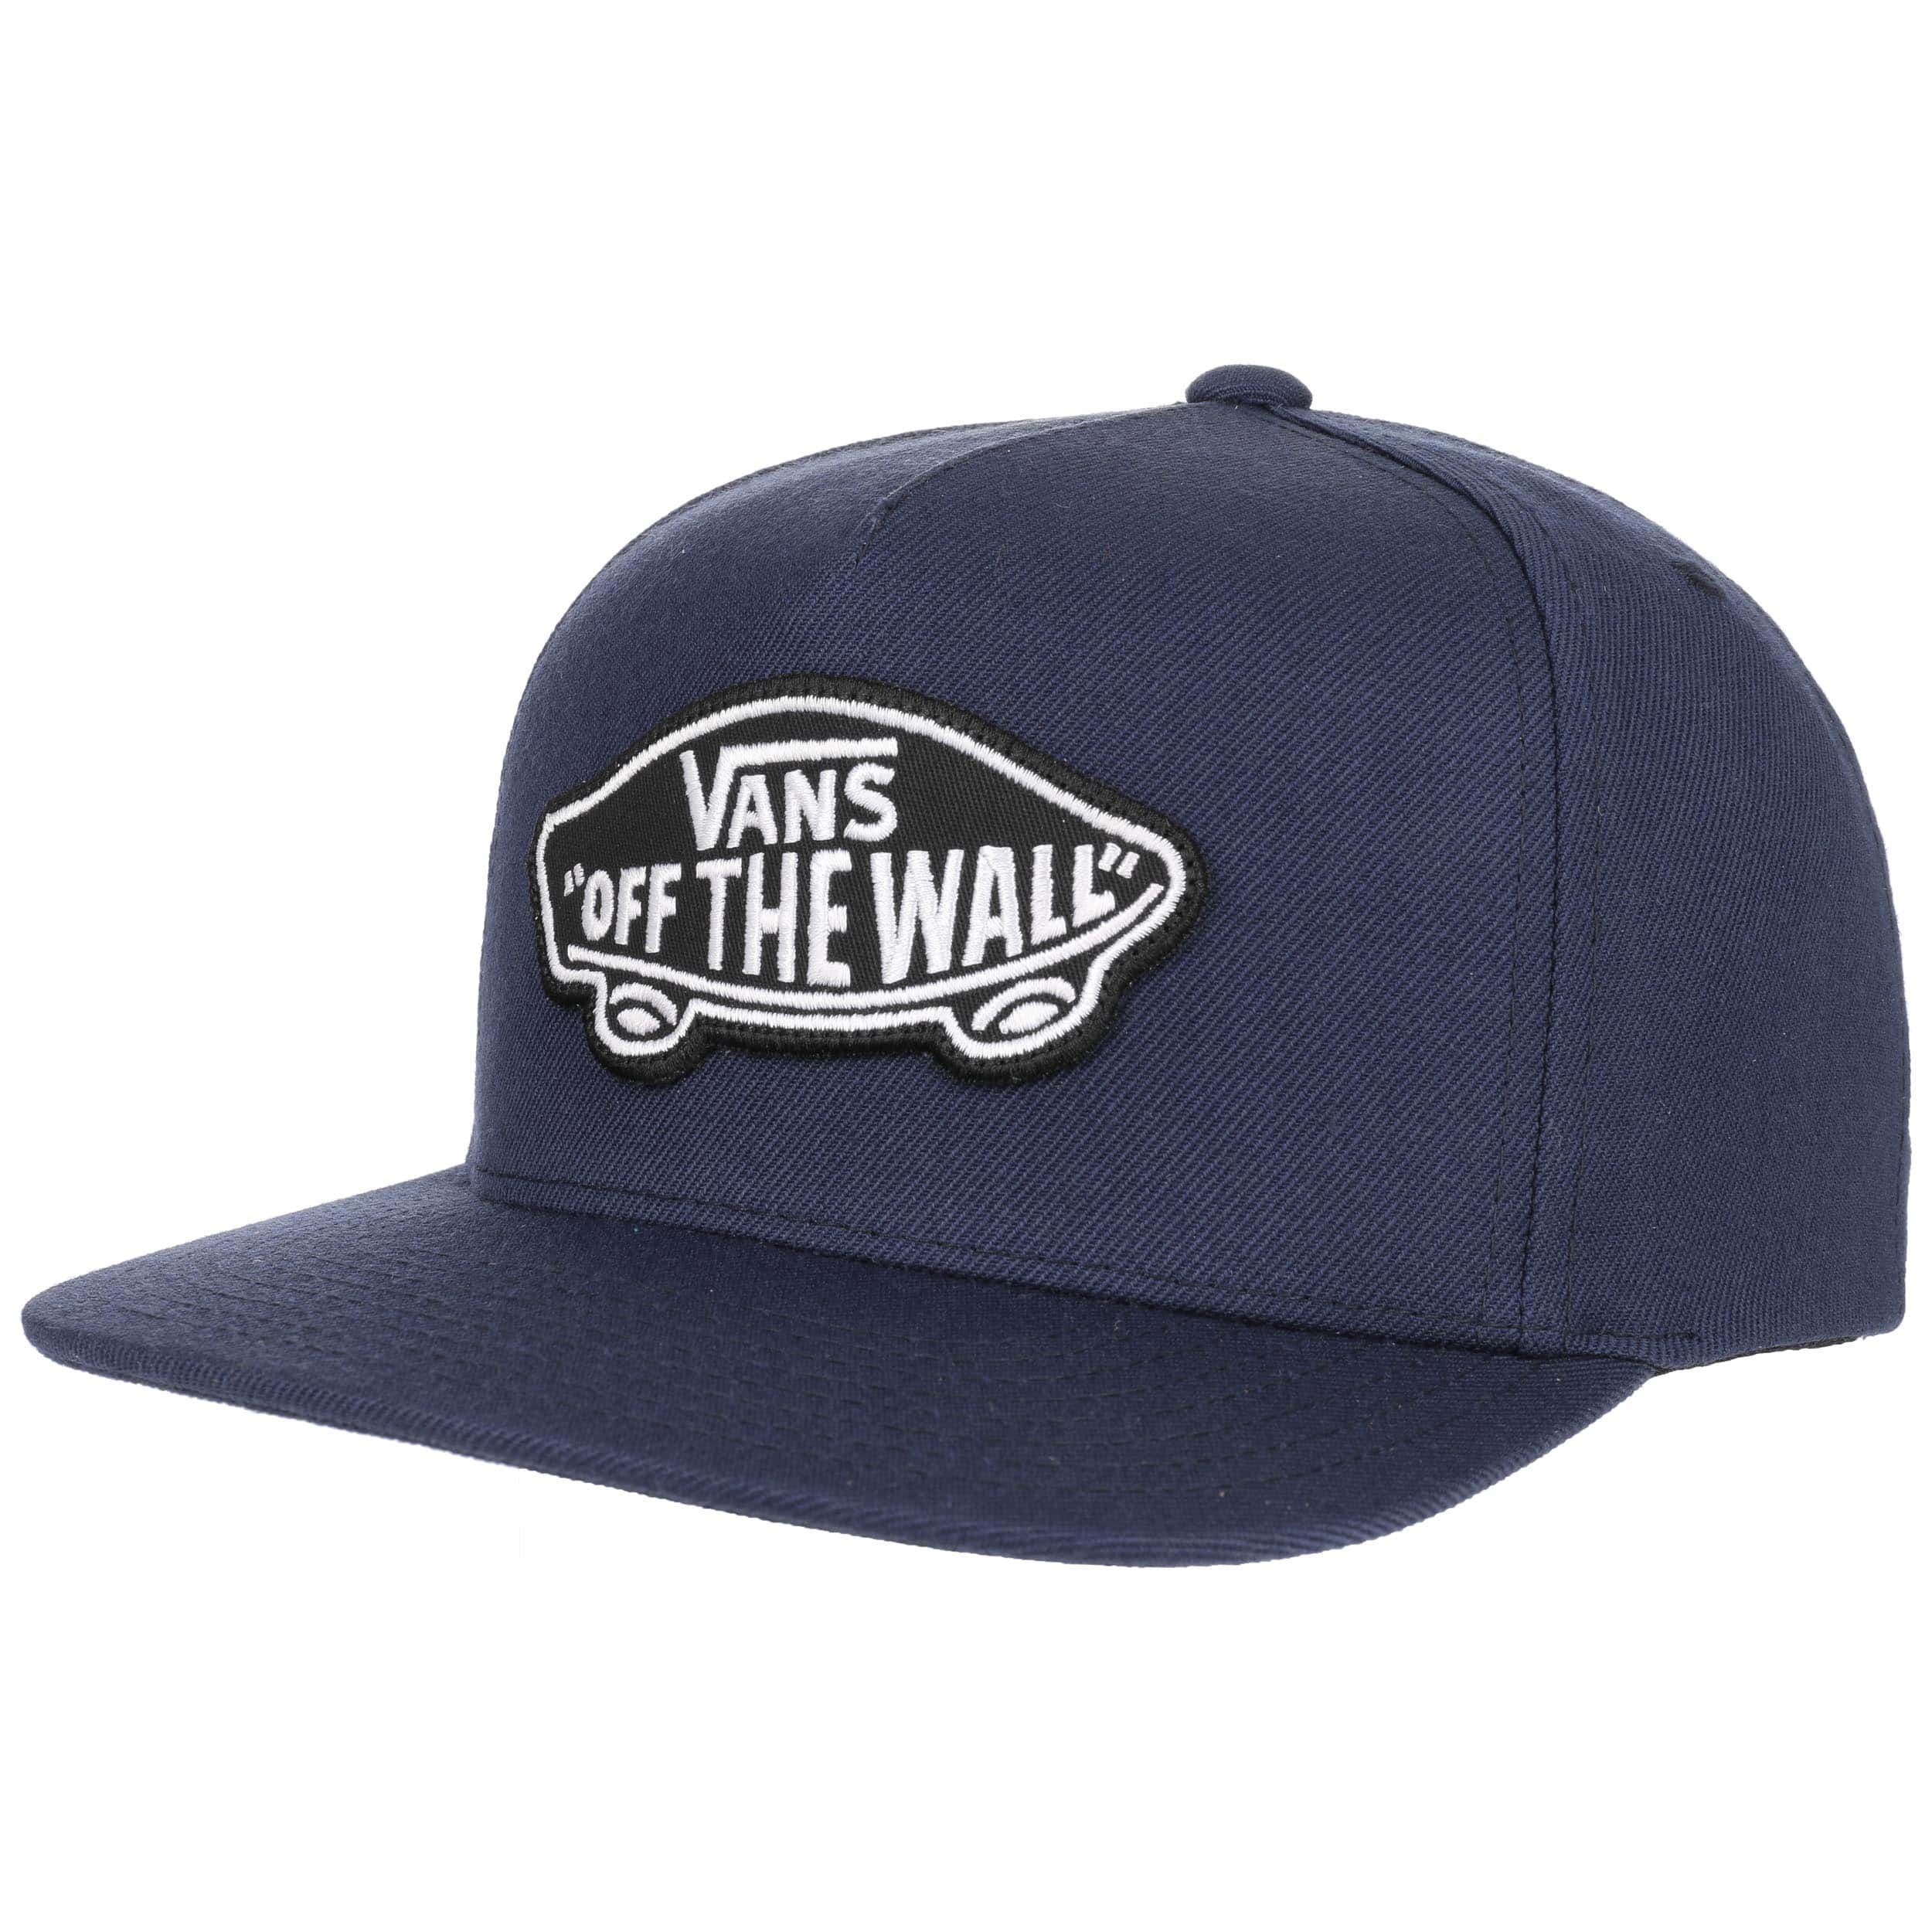 3d0469fa63 ... Classic Patch Snapback Cap by Vans - navy 5 ...